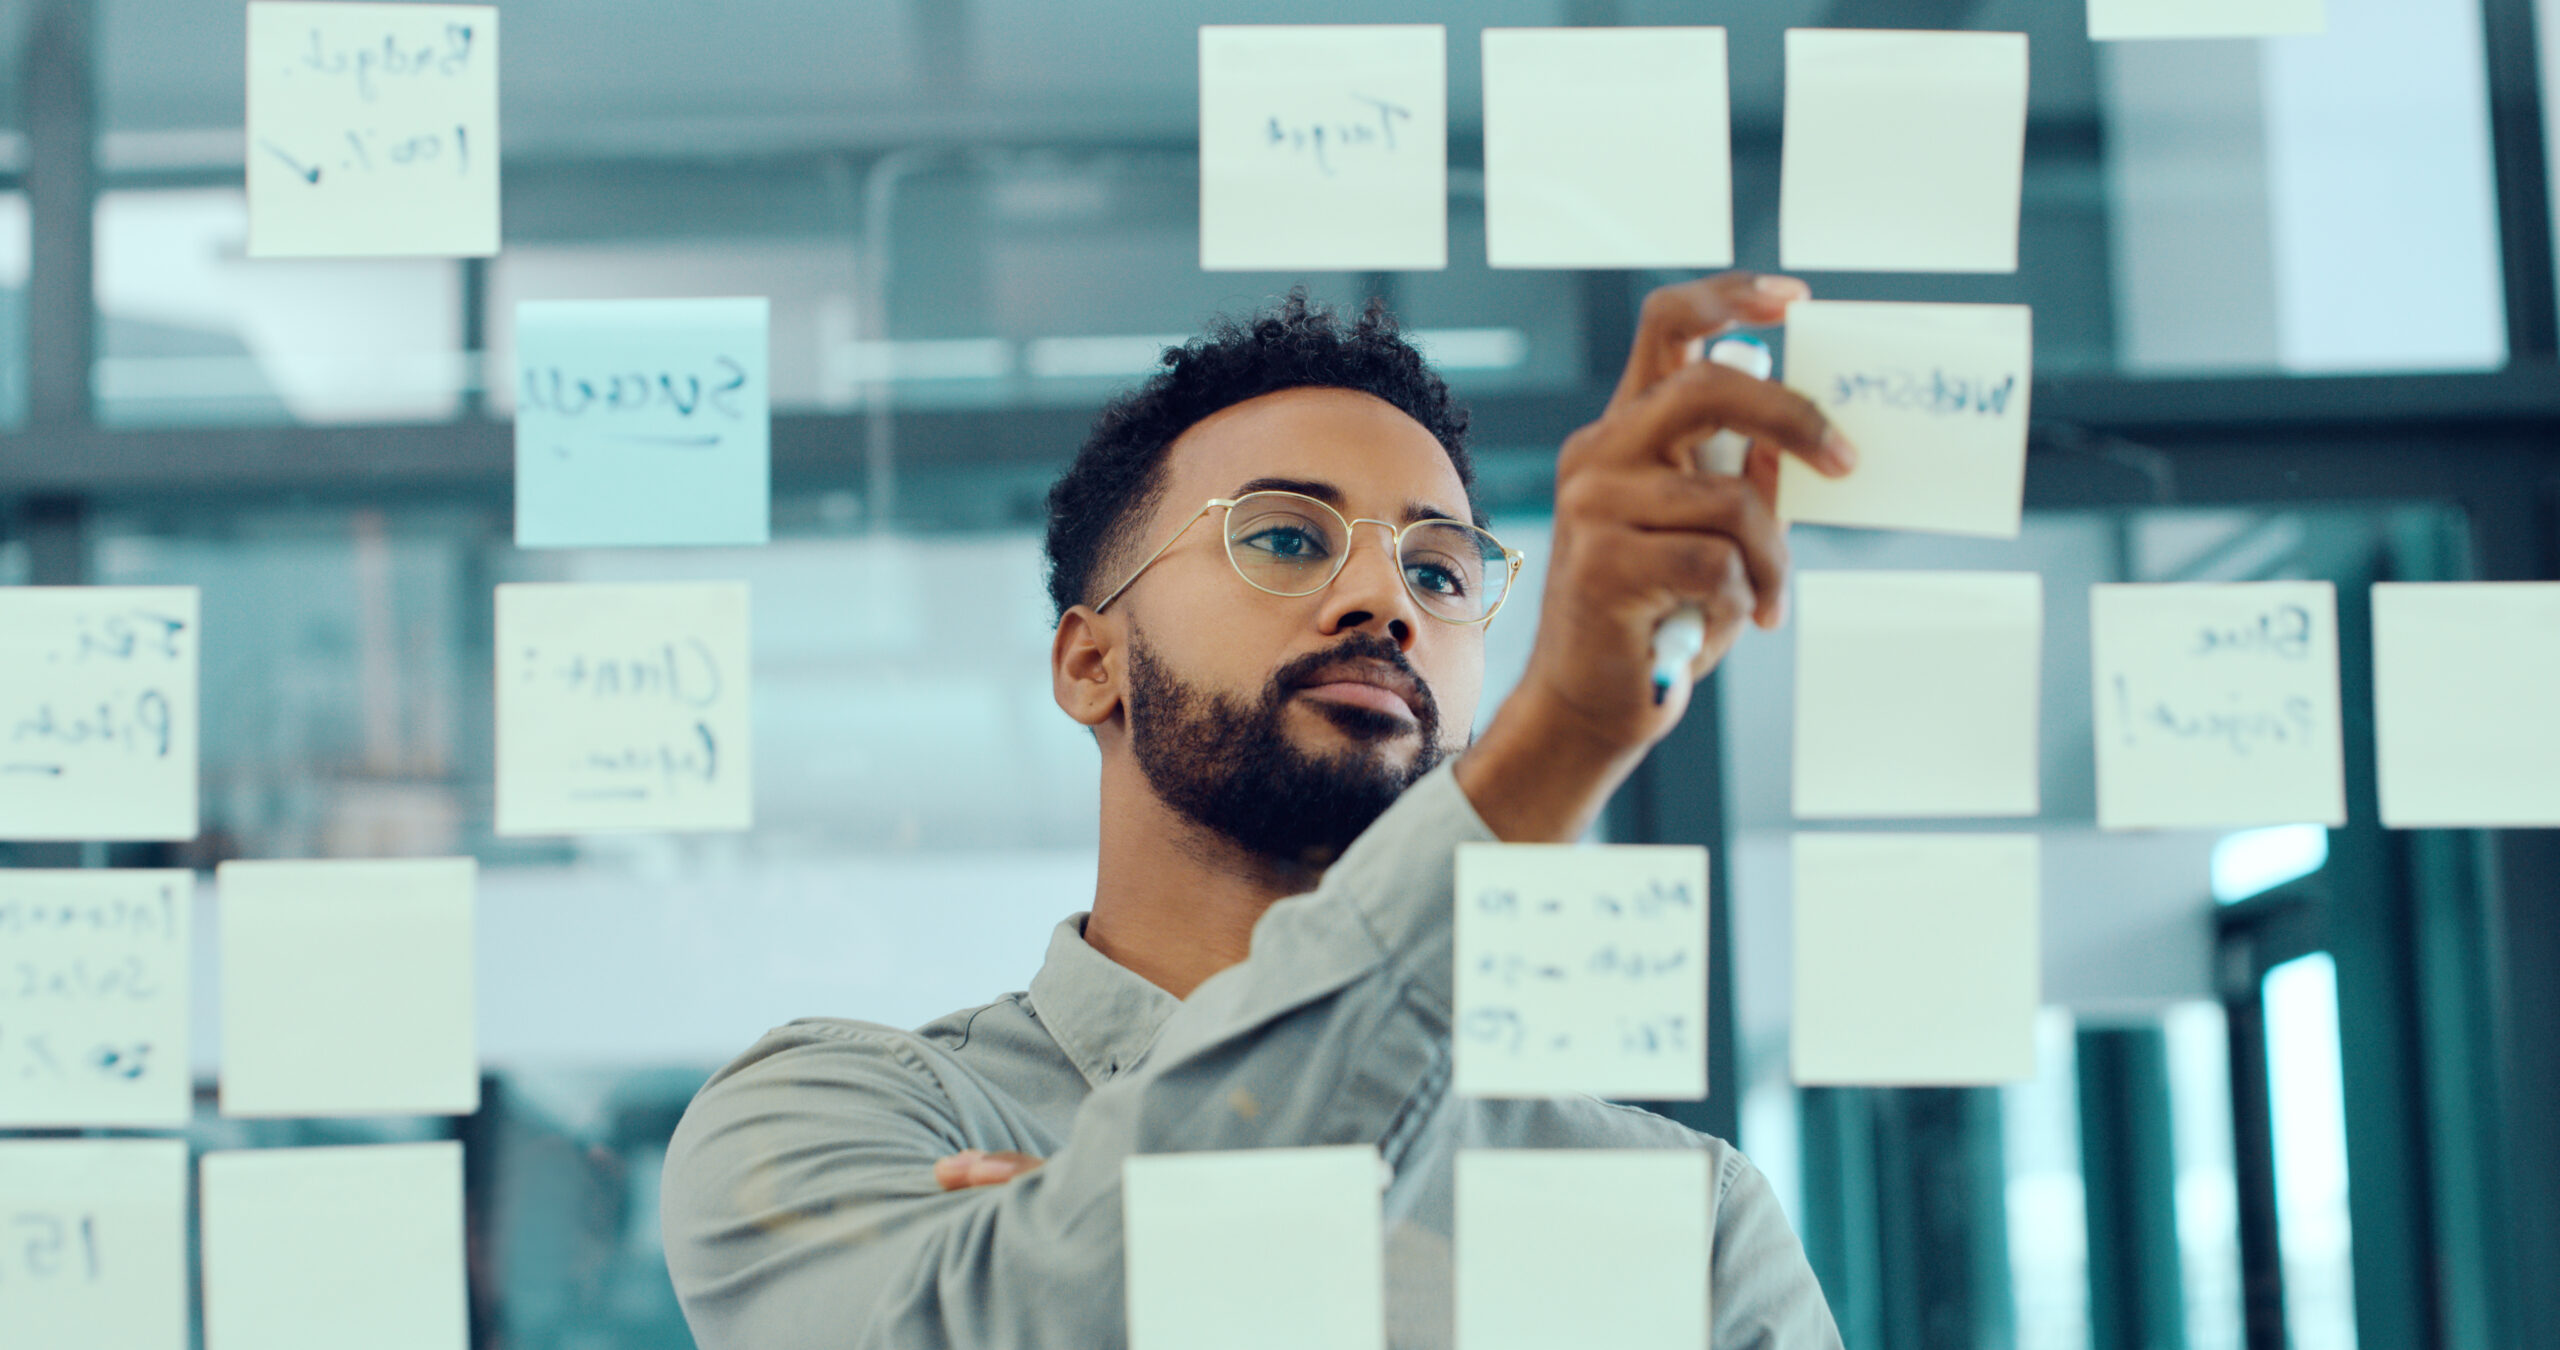 Shot of a young businessman having a brainstorming session in a modern office